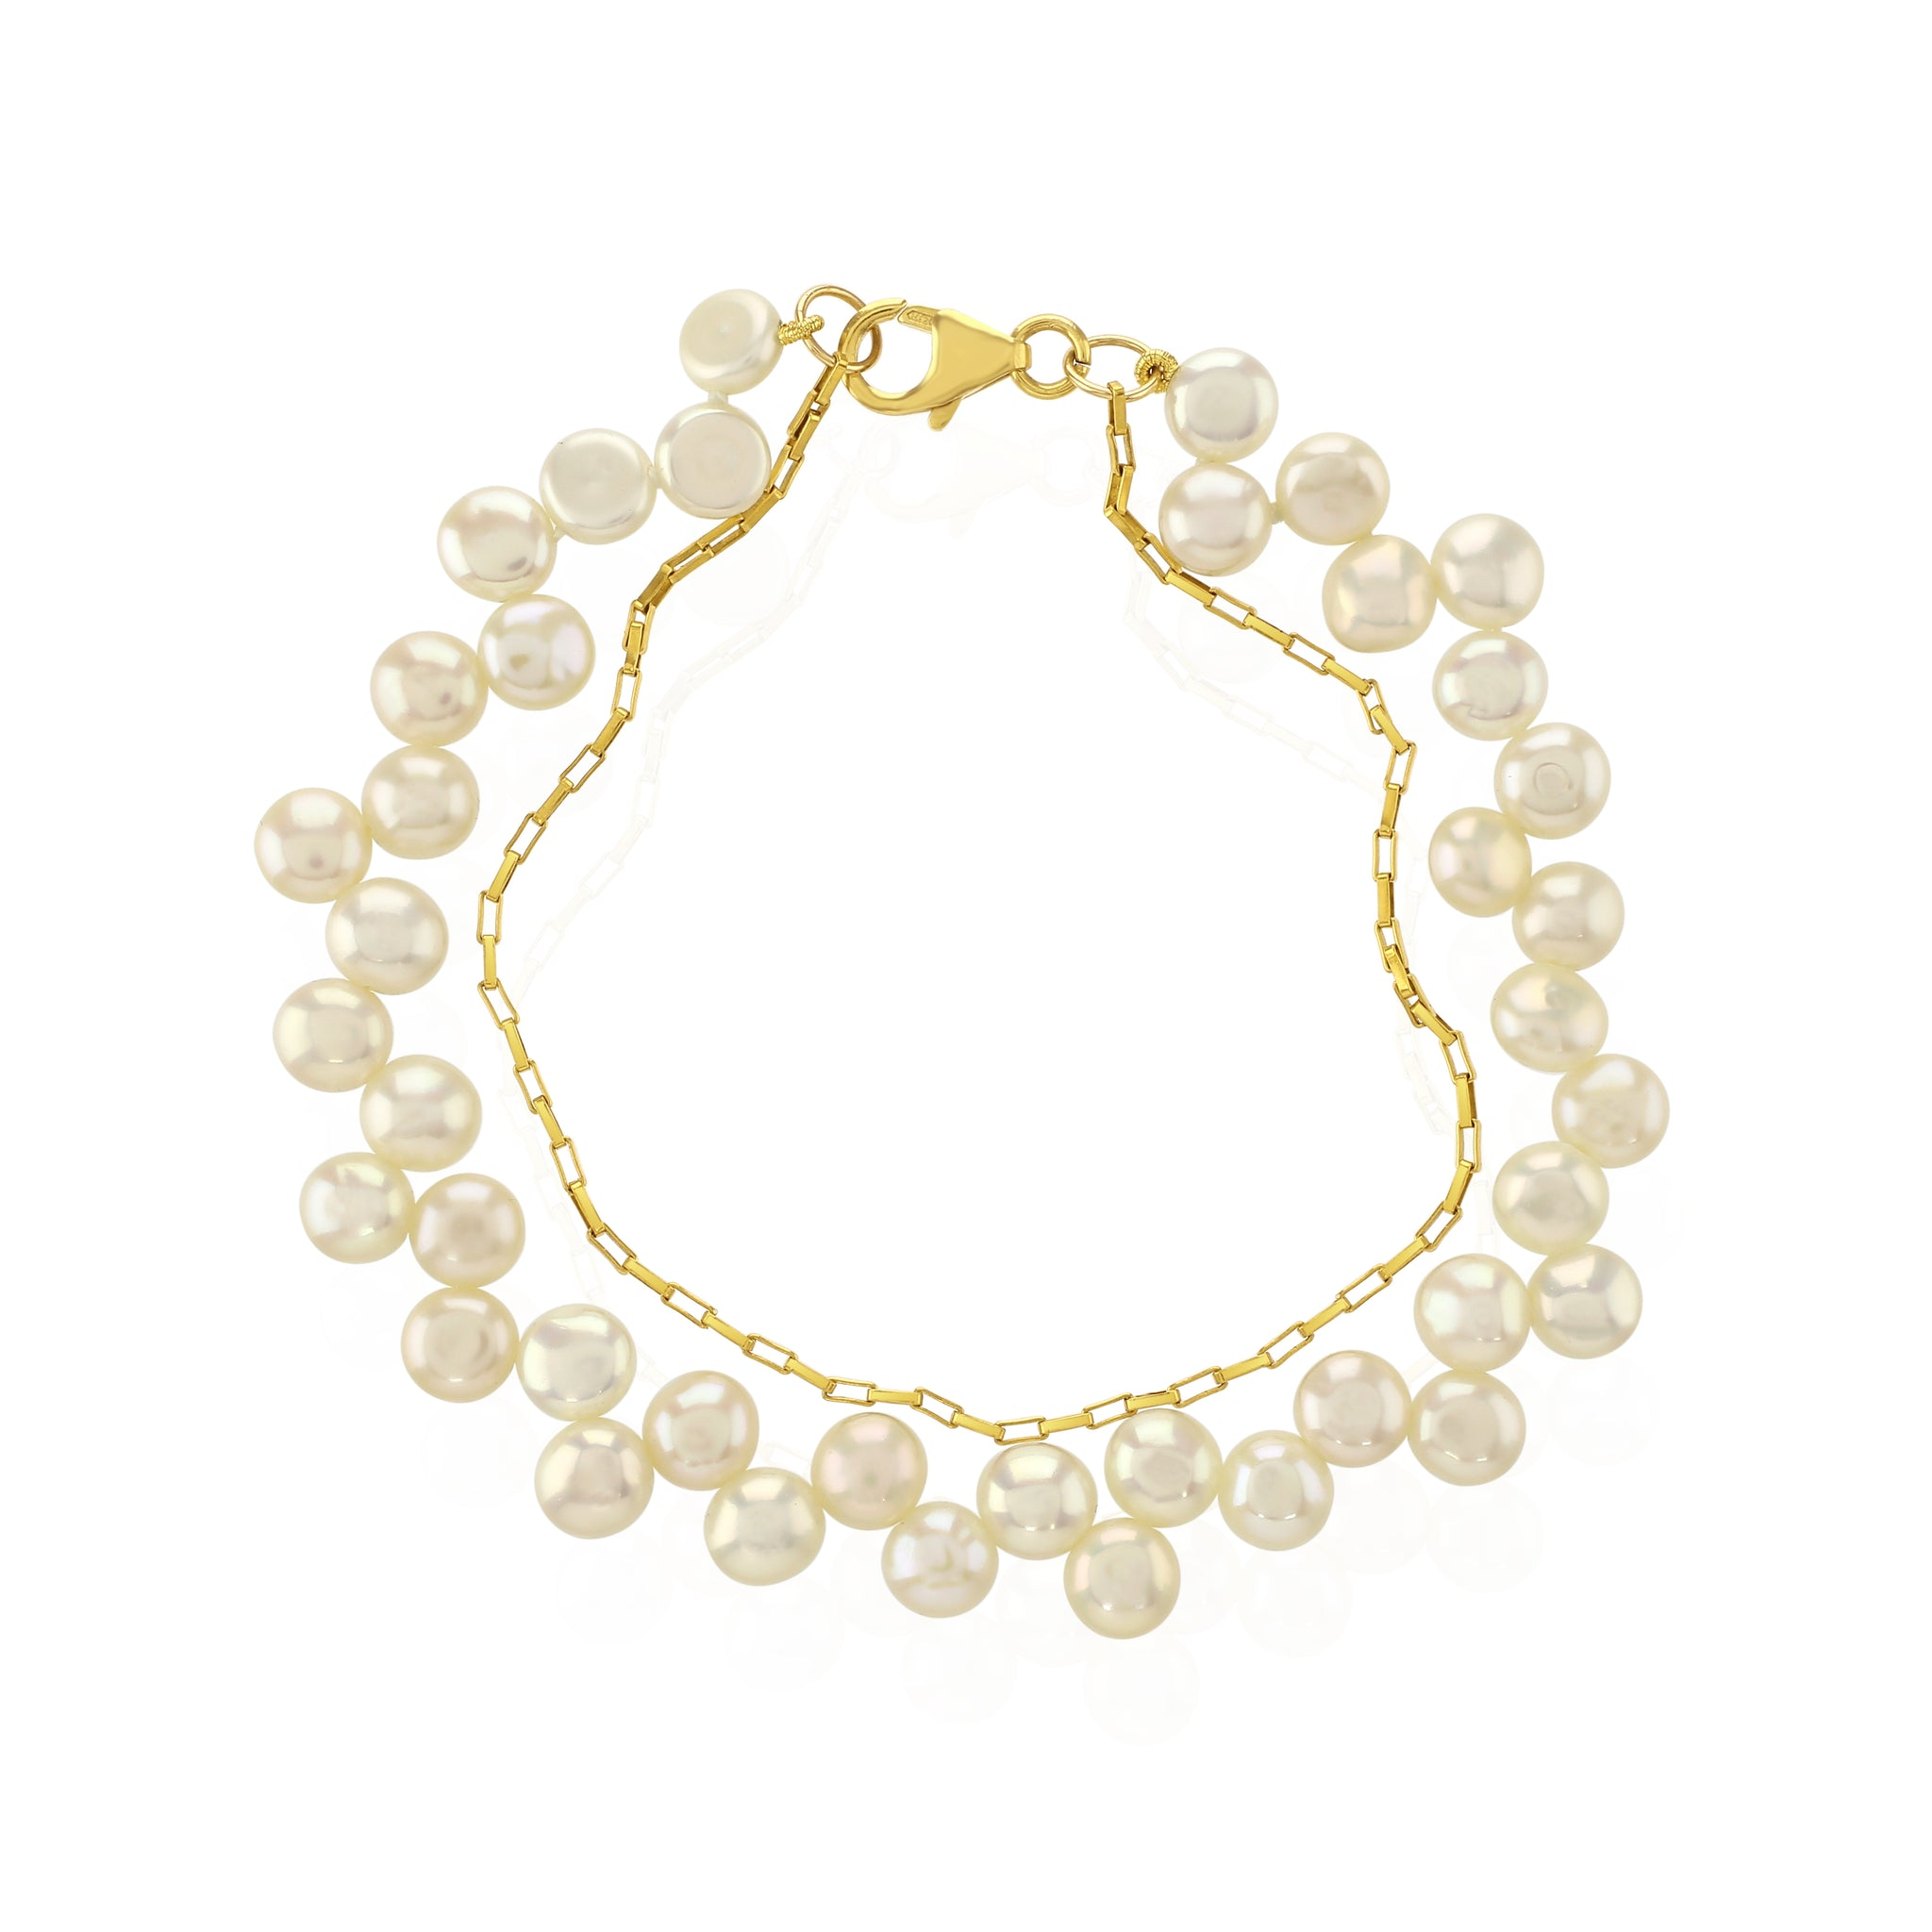 Sondr London - The Harmony Pearl Bracelet